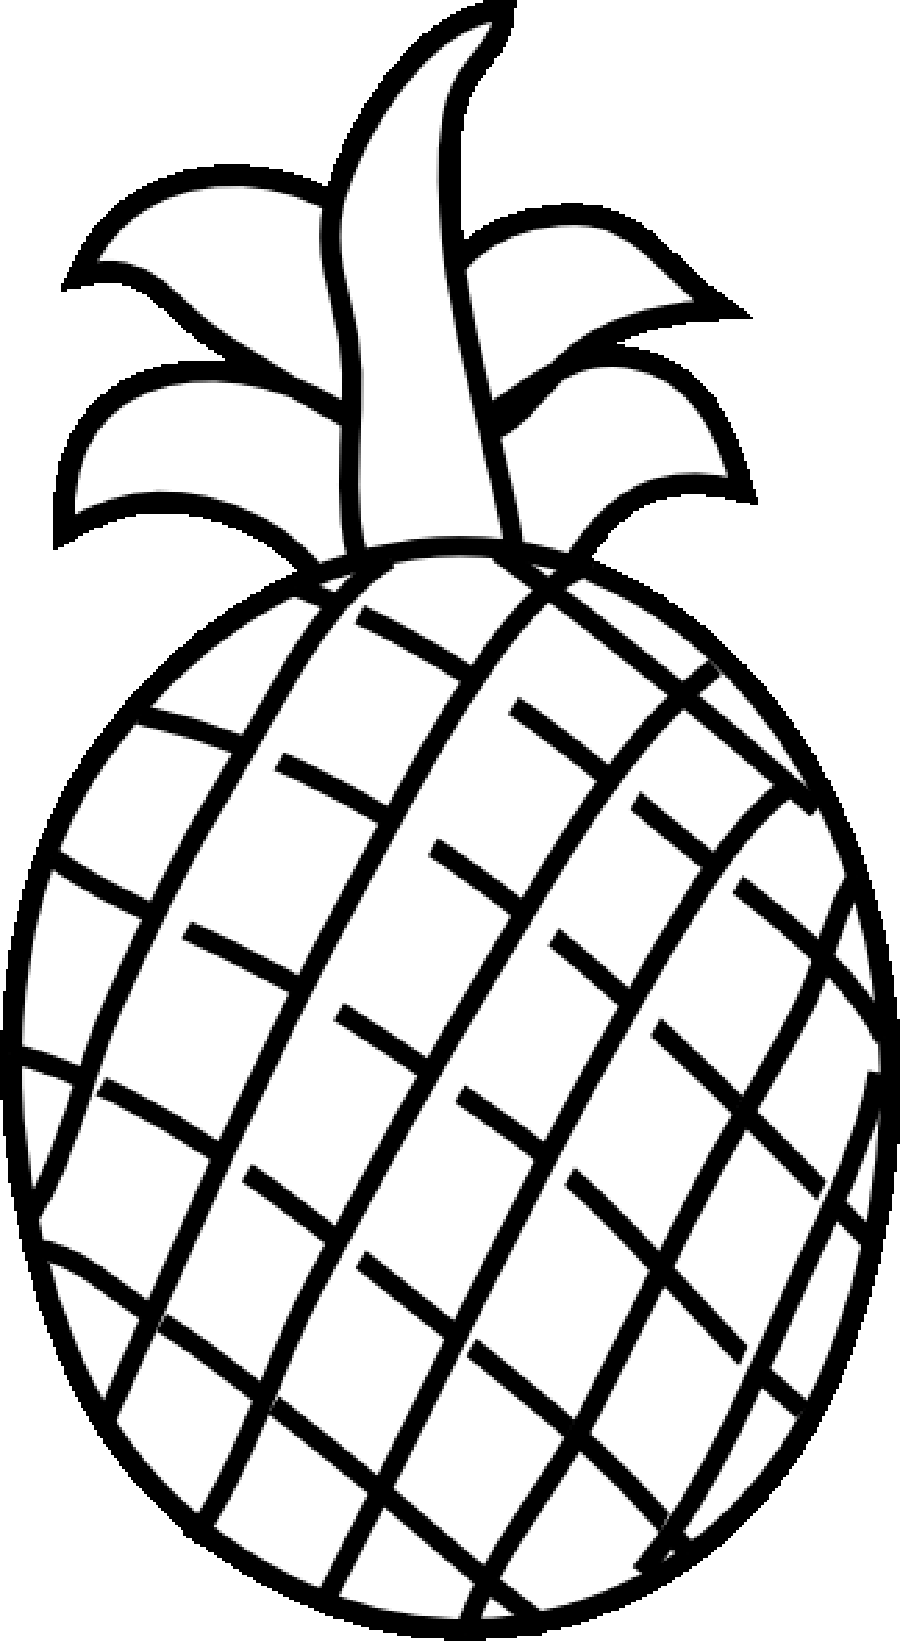 coloring different fruits tasteful strawberry fruit coloring page for kids fruits different coloring fruits